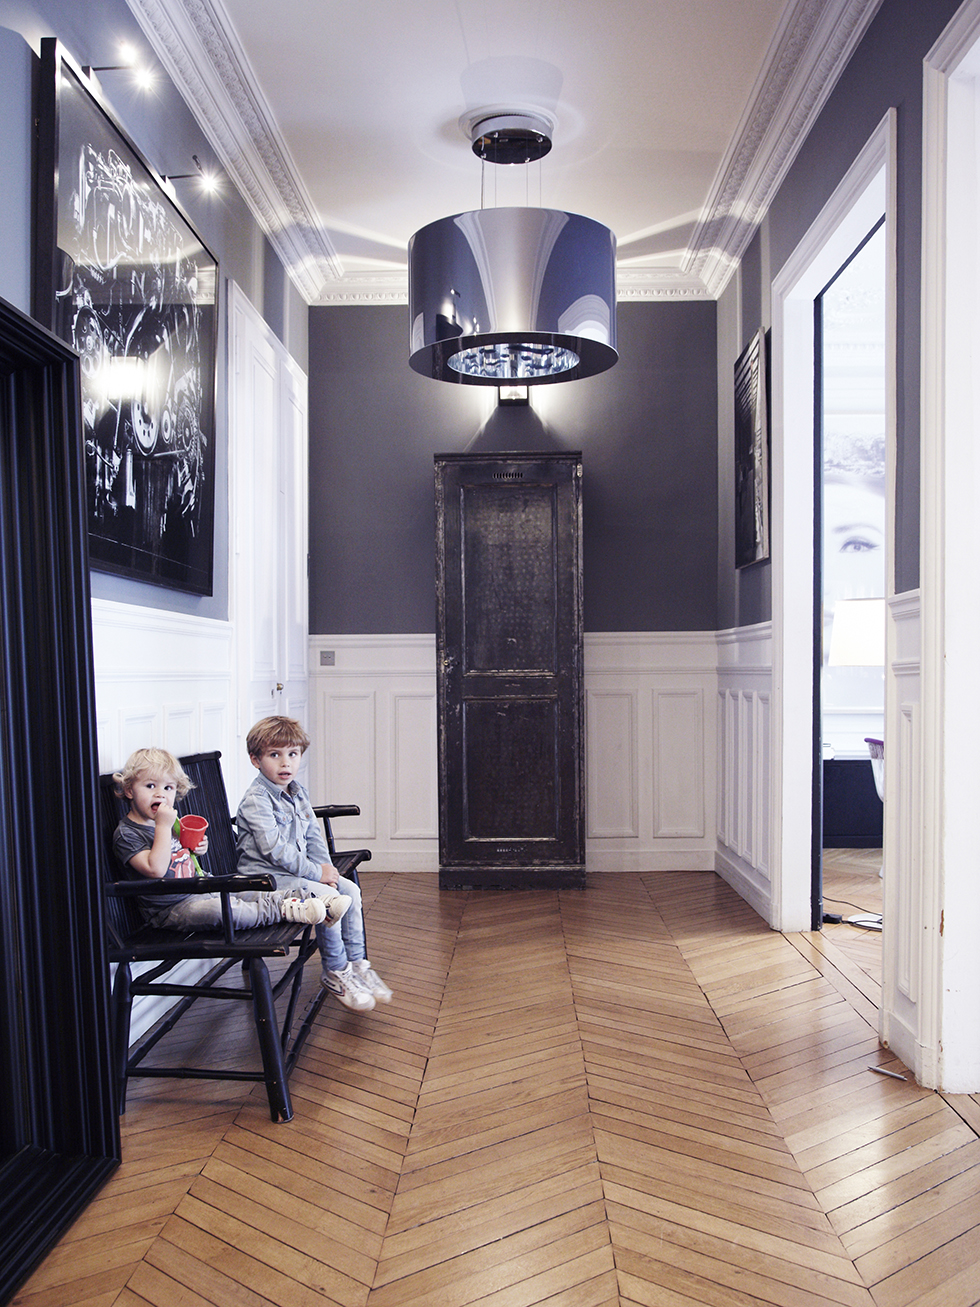 Un intérieur parisien so chic   frenchy fancy